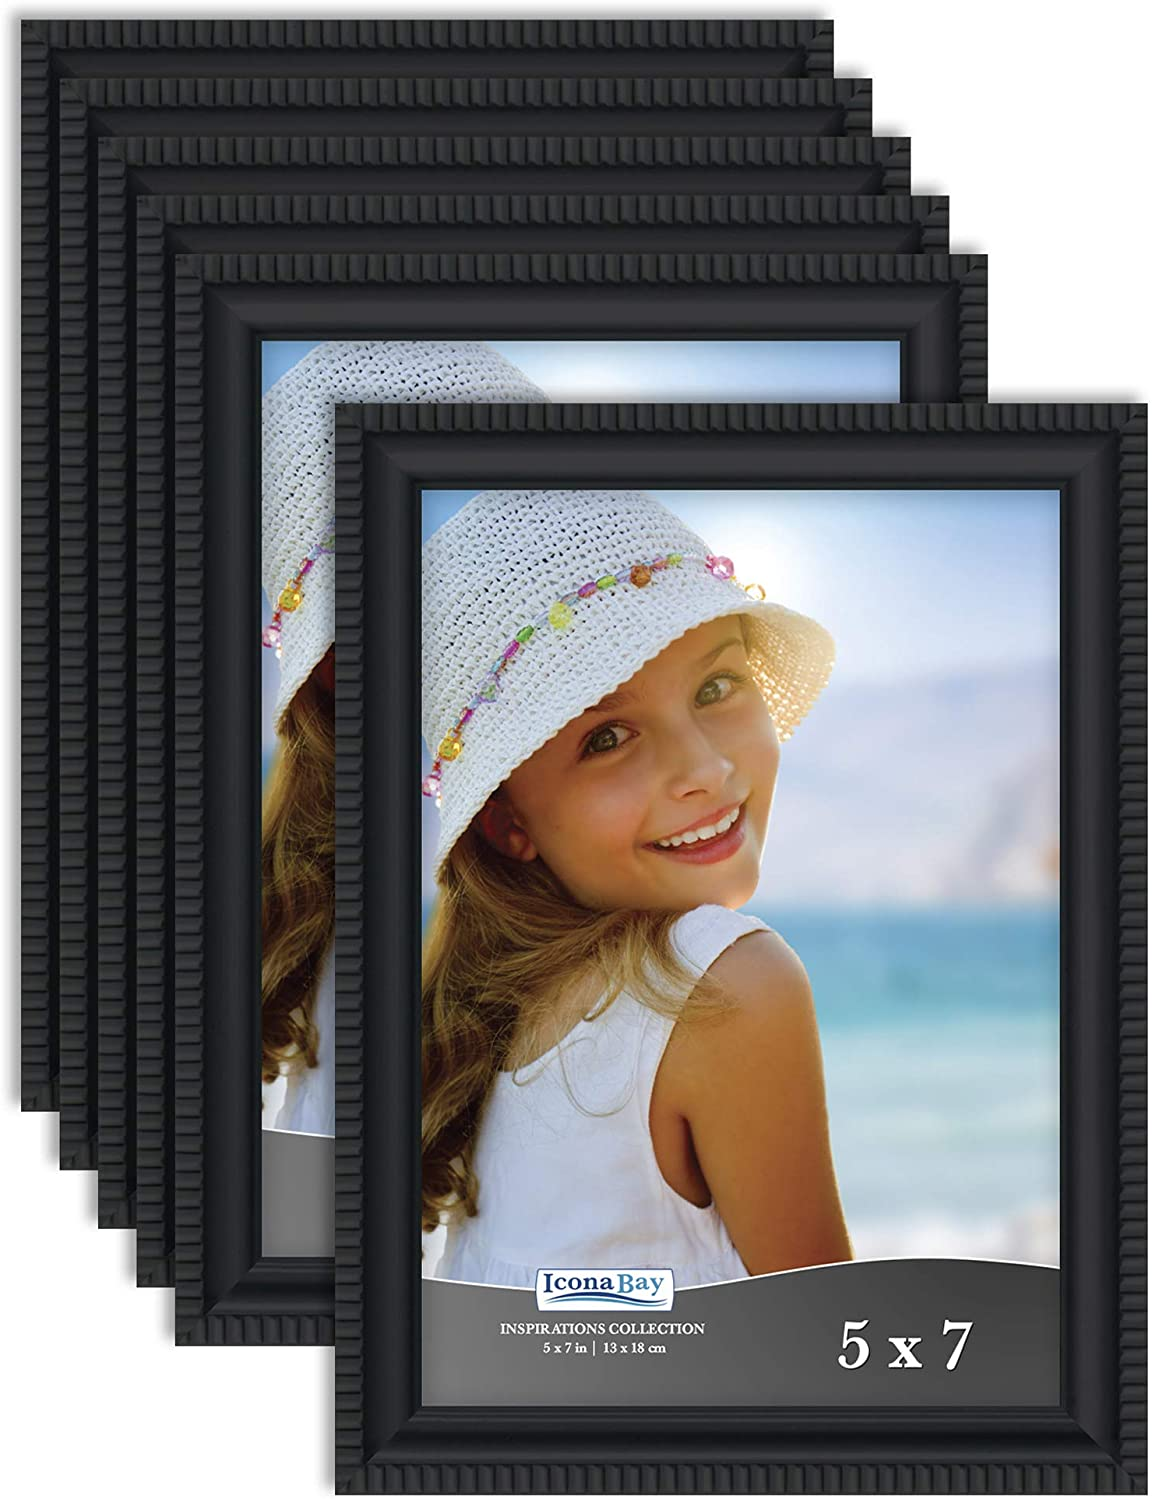 Icona Bay 5x7 Picture Frames (Black, 6 Pack), Beautifully Detailed Molding, Contemporary Picture Frame Set, Wall Mount or Table Top, Inspirations Collection